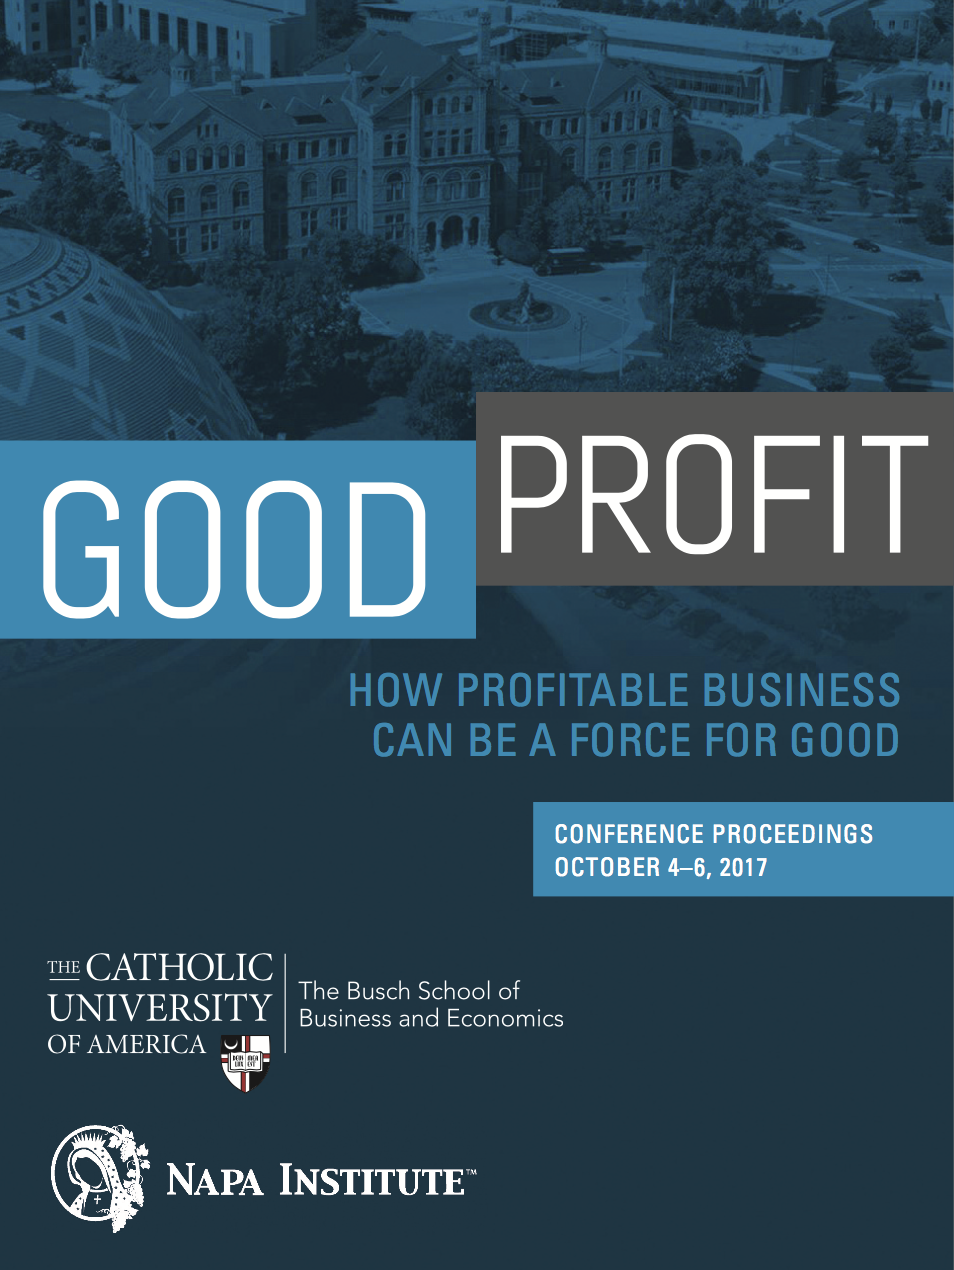 Good Profit book cover